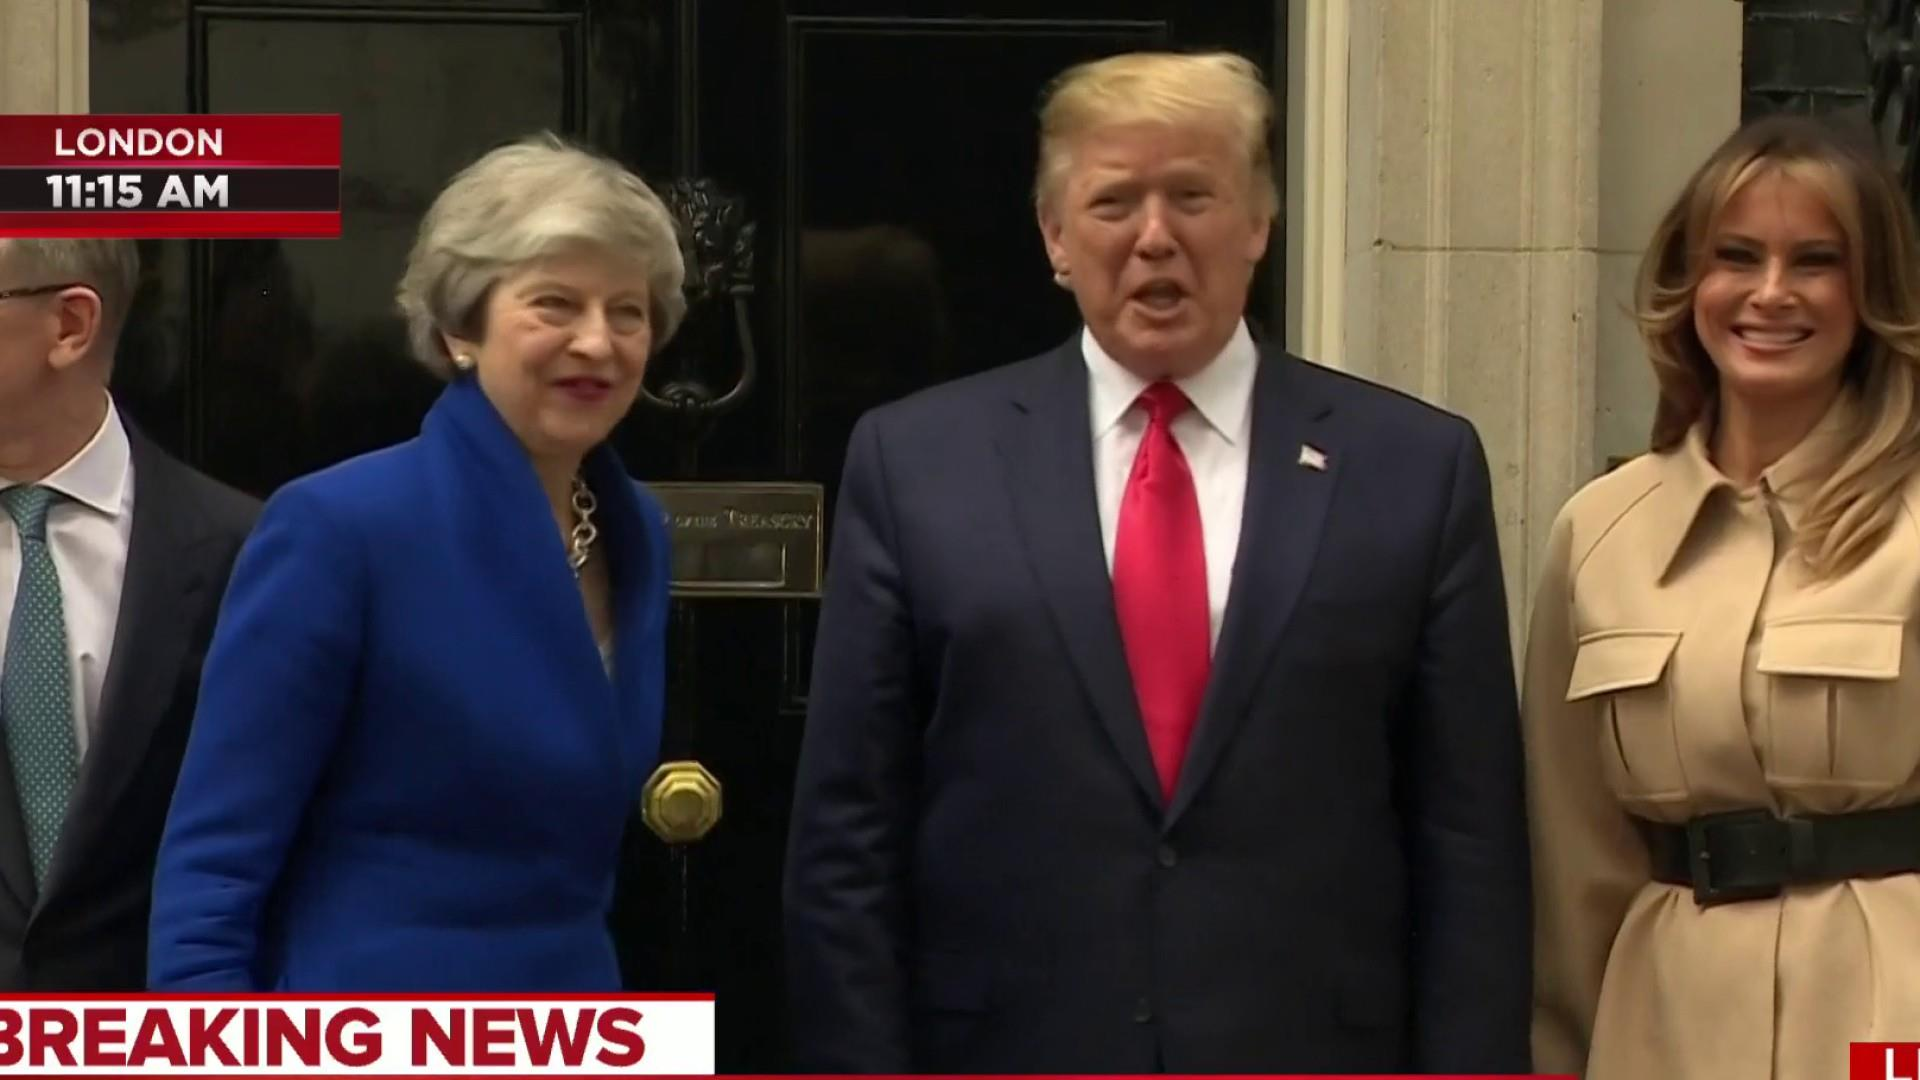 Huge protests form as Trump meets with Theresa May